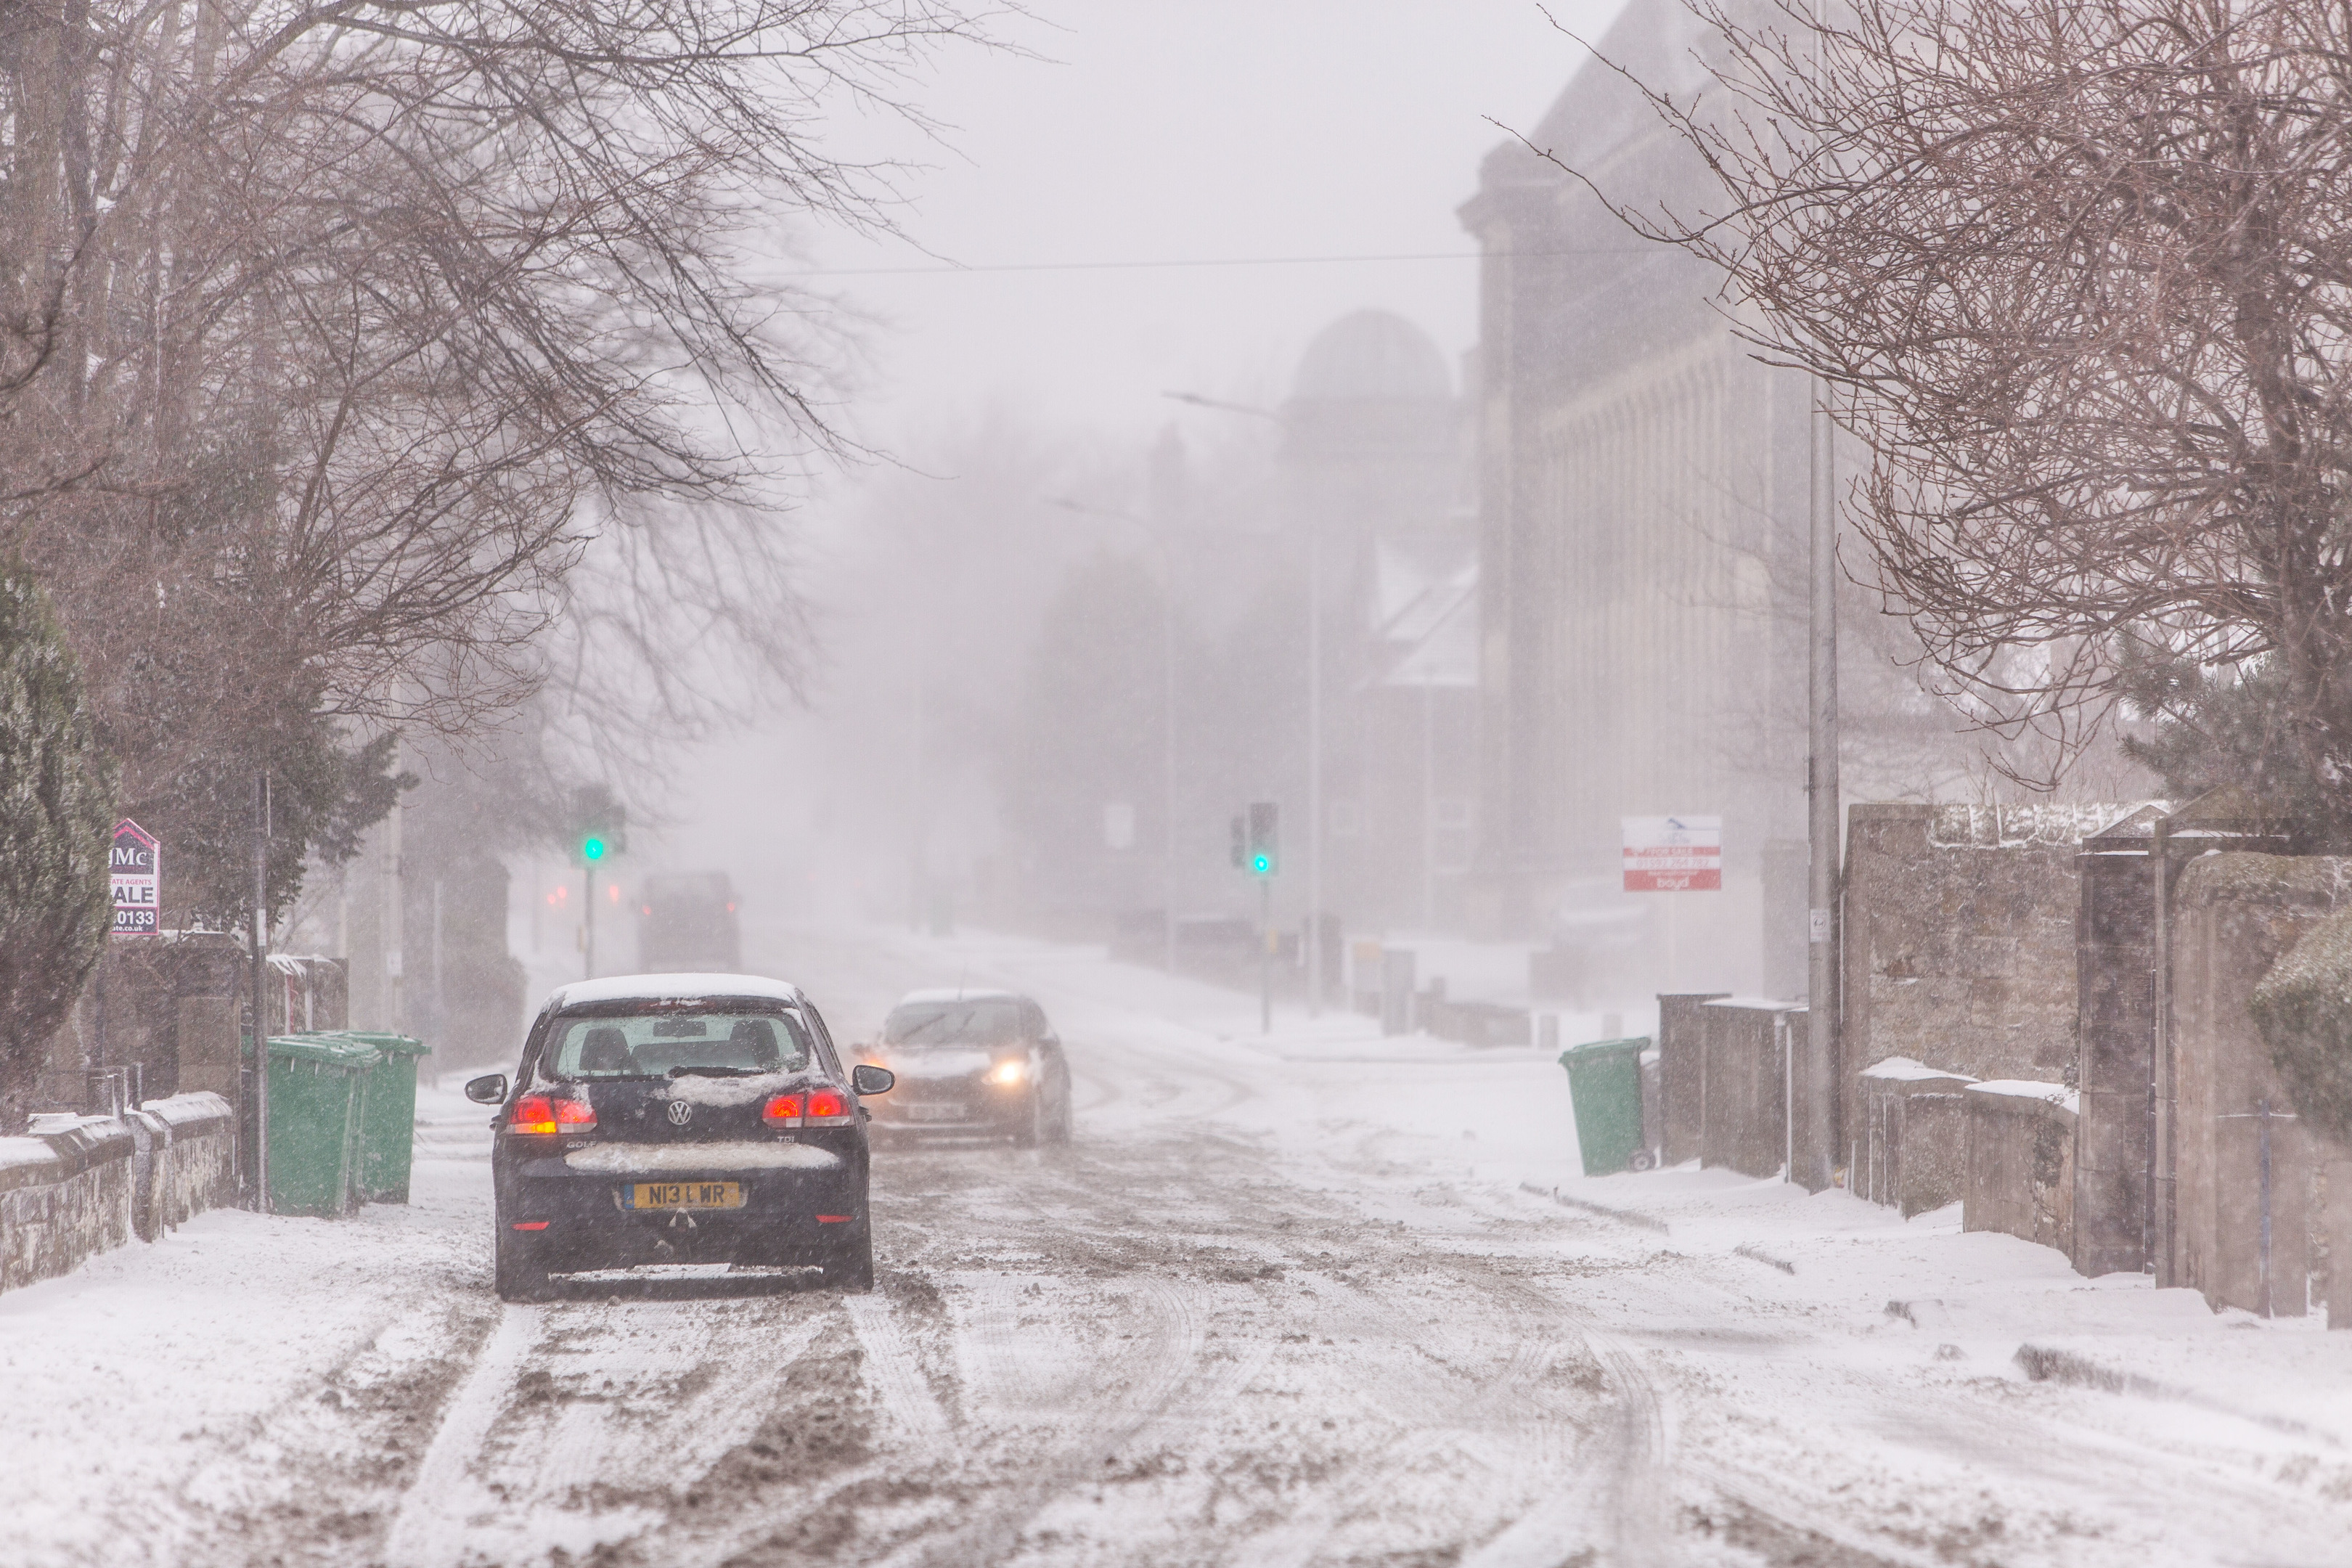 Kirkcaldy during snowy weather on Wednesday.